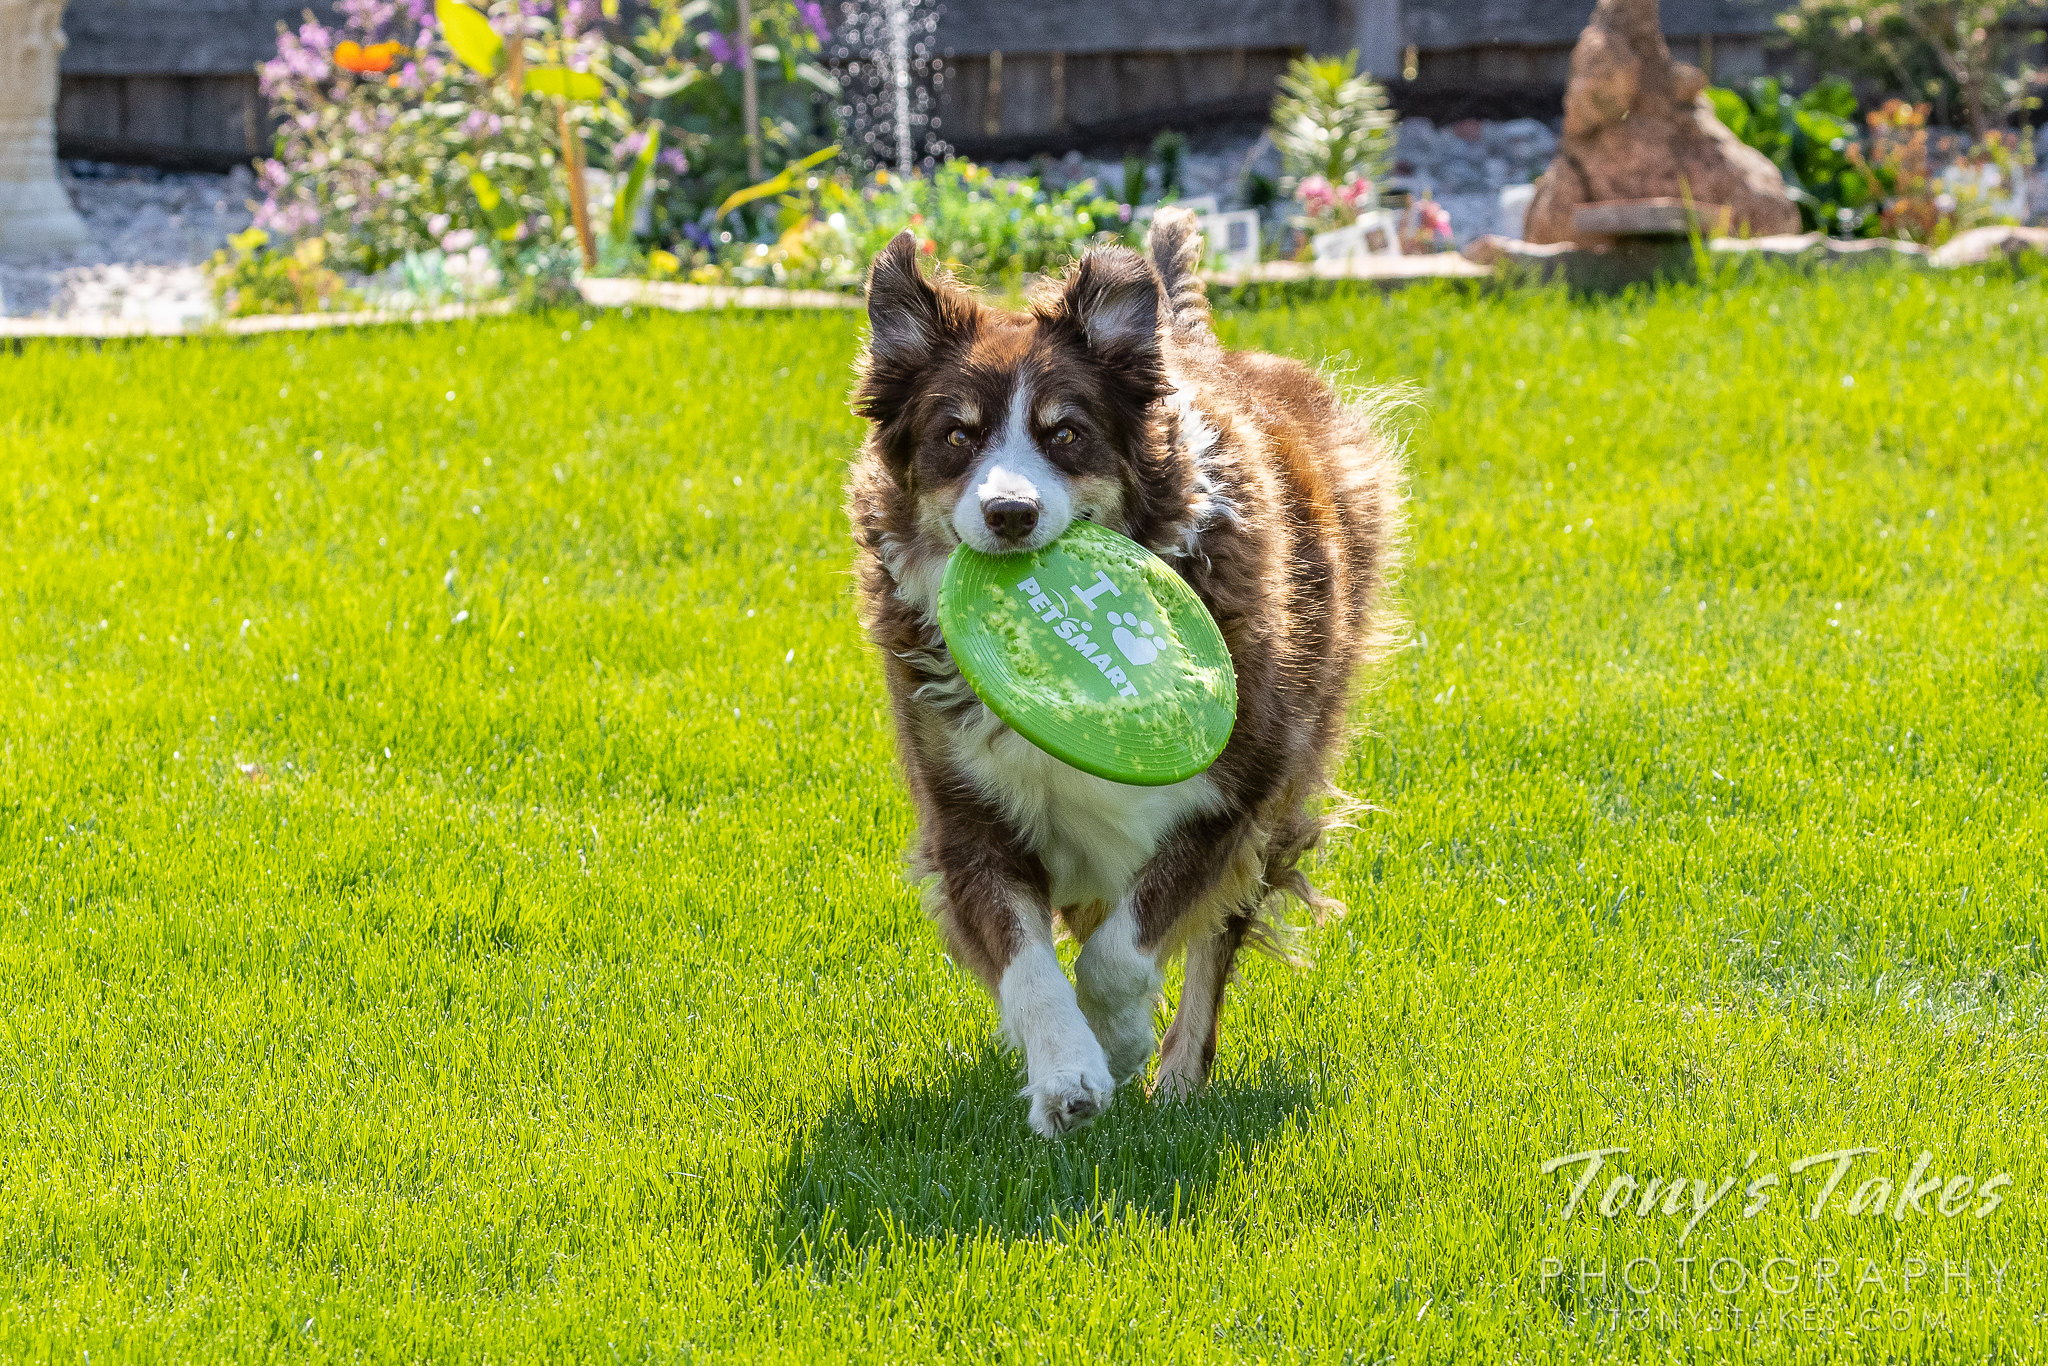 Scout returns with a Frisbee. (© Tony's Takes)